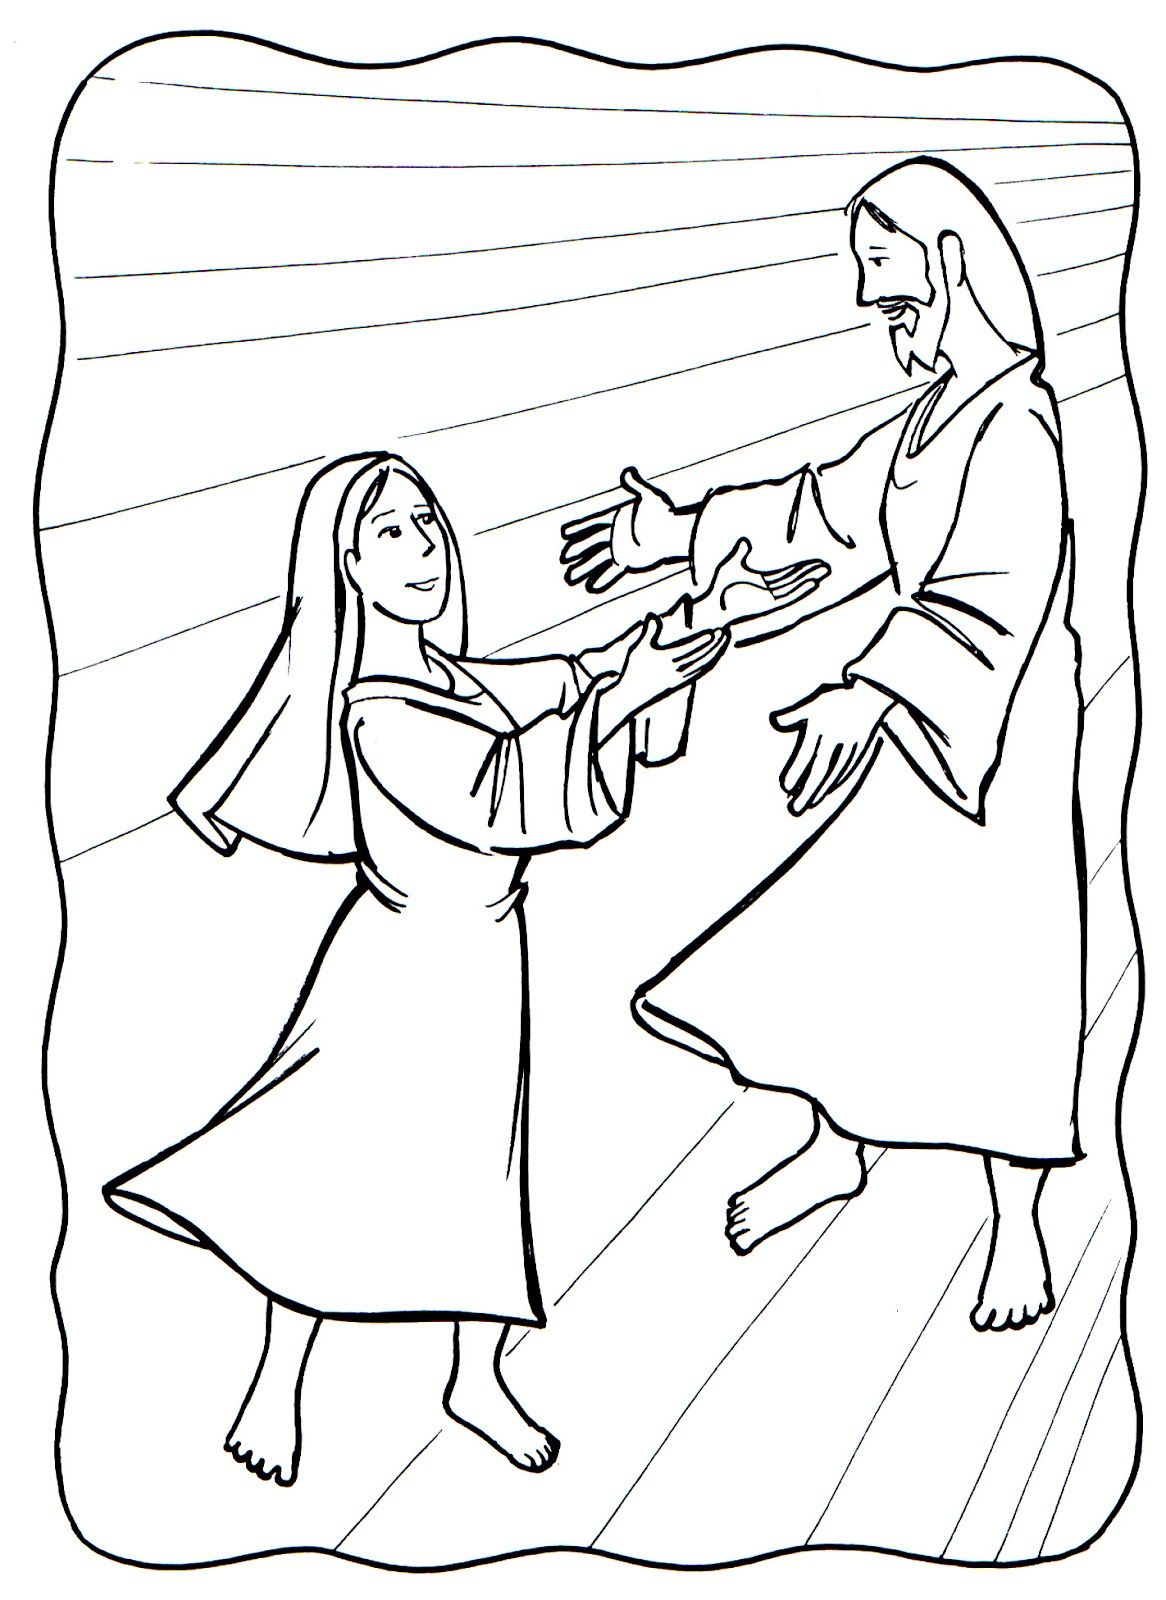 The Assumption Of Mary Coloring Page With Images Assumption Of